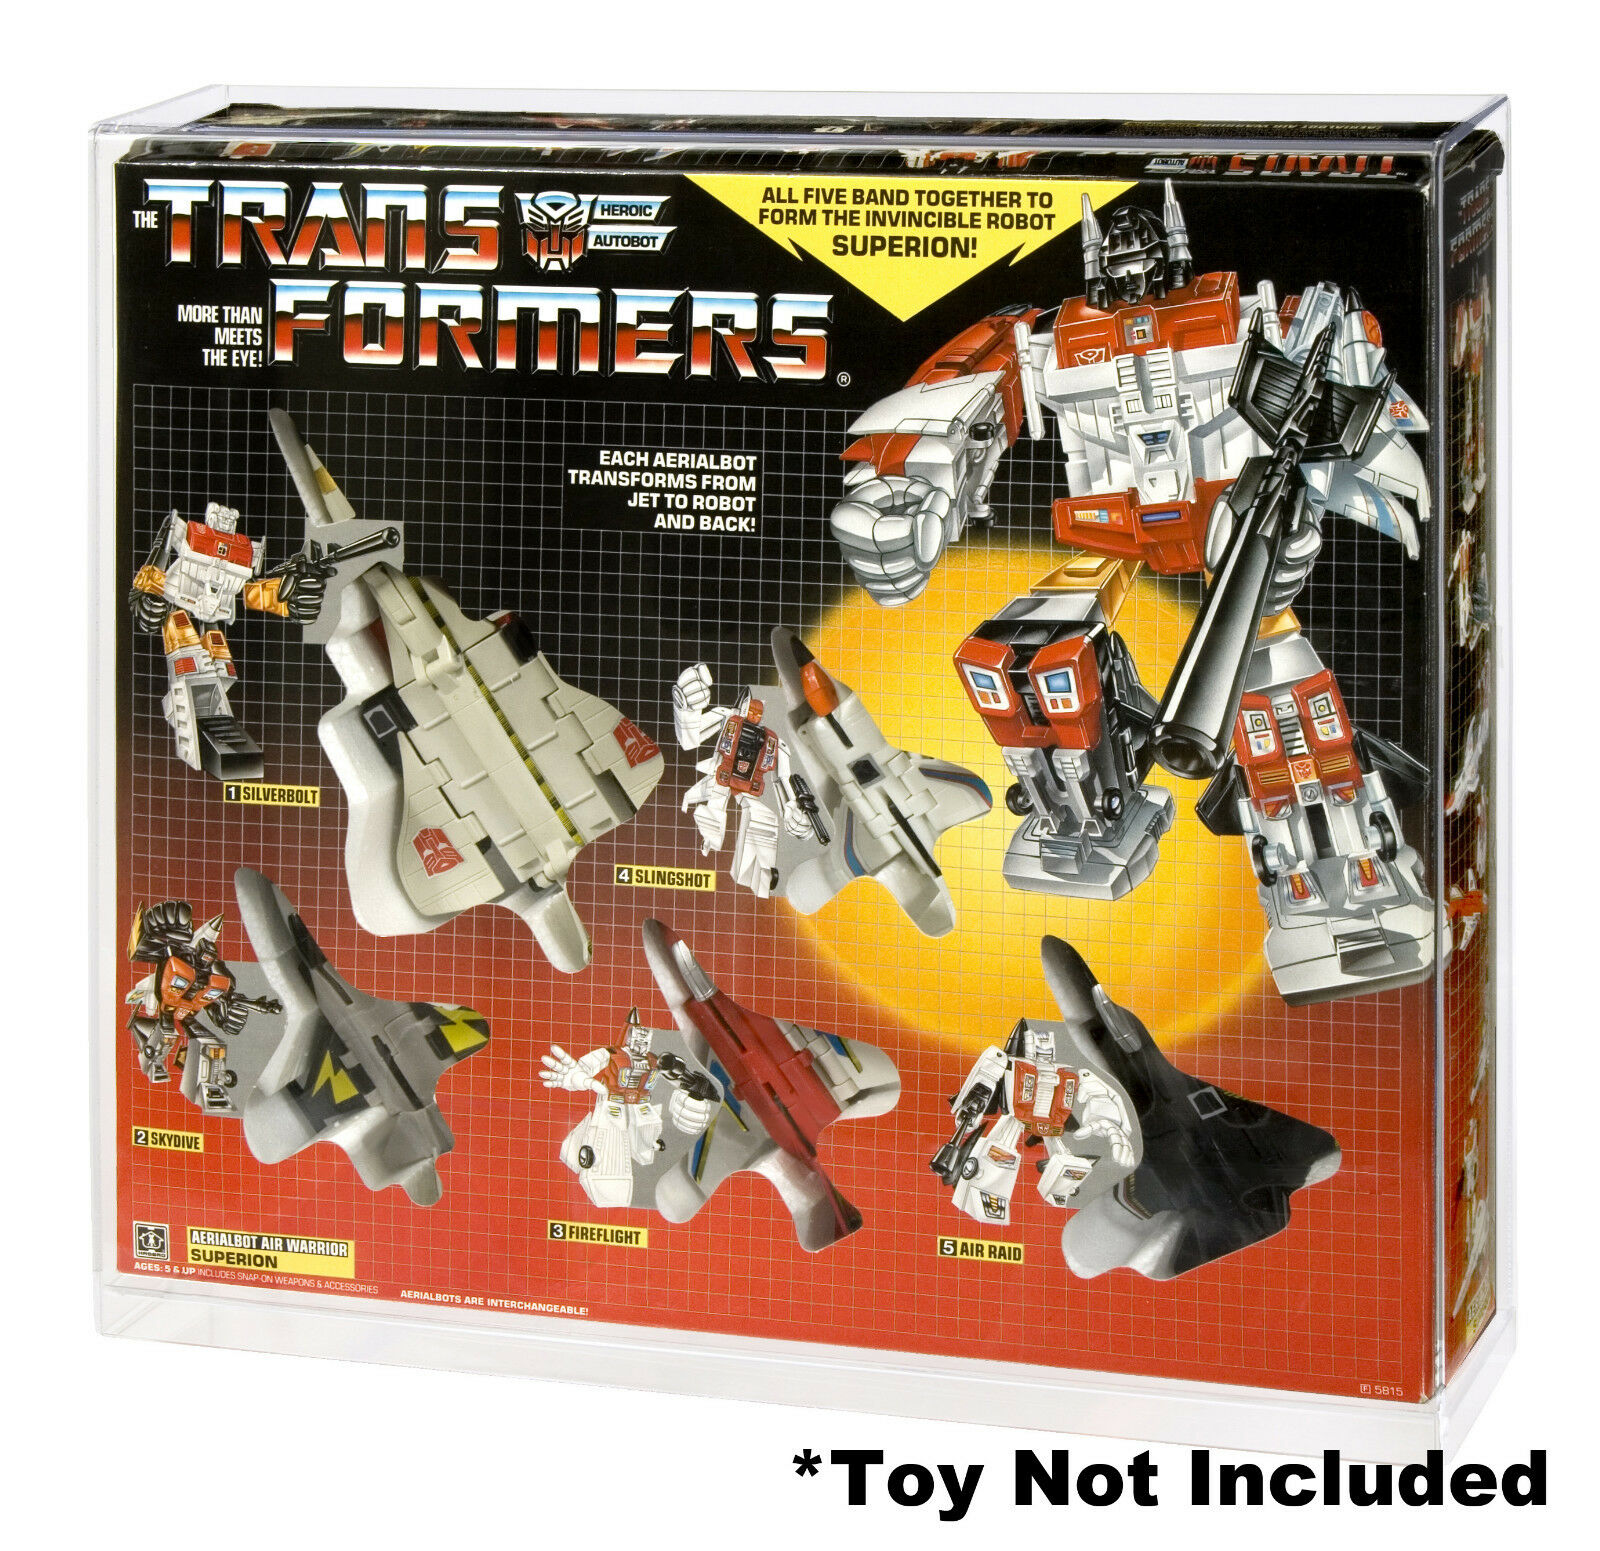 Transformers Superion Gift Set Acrylic Display Case